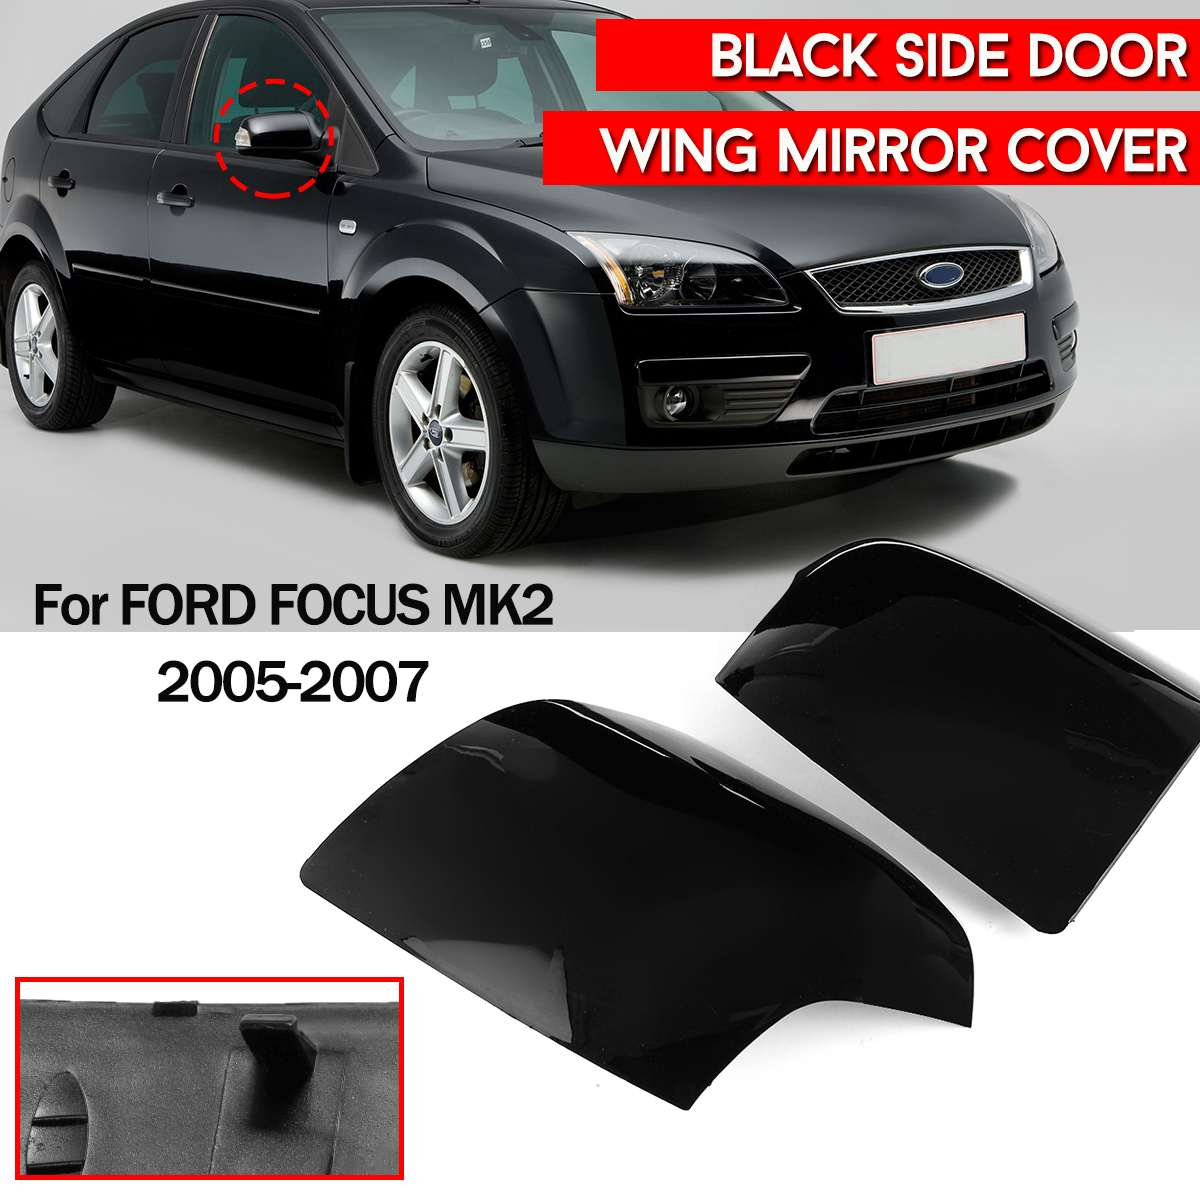 Left Right <font><b>Side</b></font> Car Rear View <font><b>Mirror</b></font> Wing Cover Case Trim Glossy Black For <font><b>FORD</b></font> For <font><b>FOCUS</b></font> MK2 2005 2006 2007 Styling image